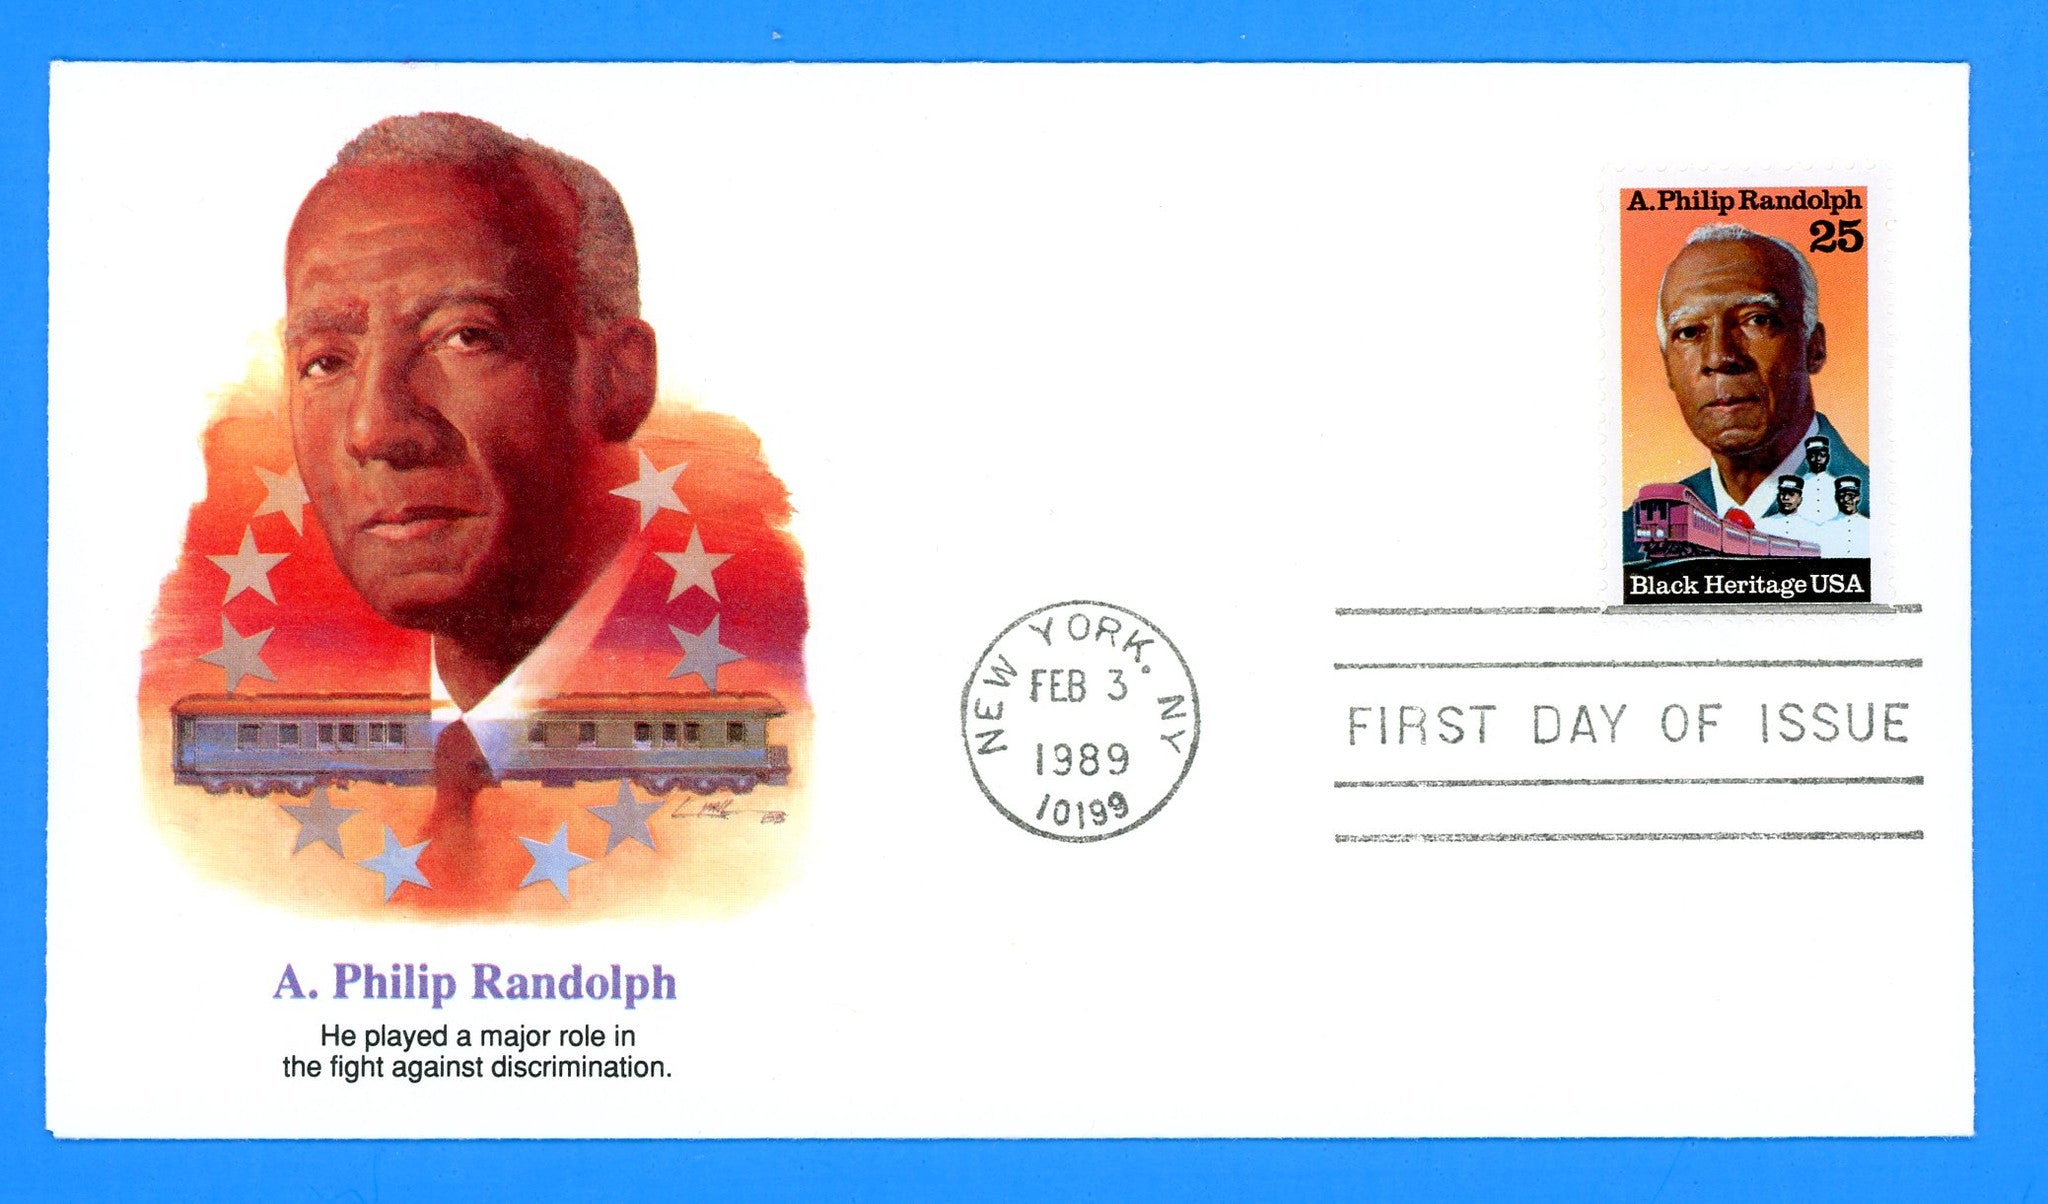 A. Philip Randolph First Day Cover by Fleetwood